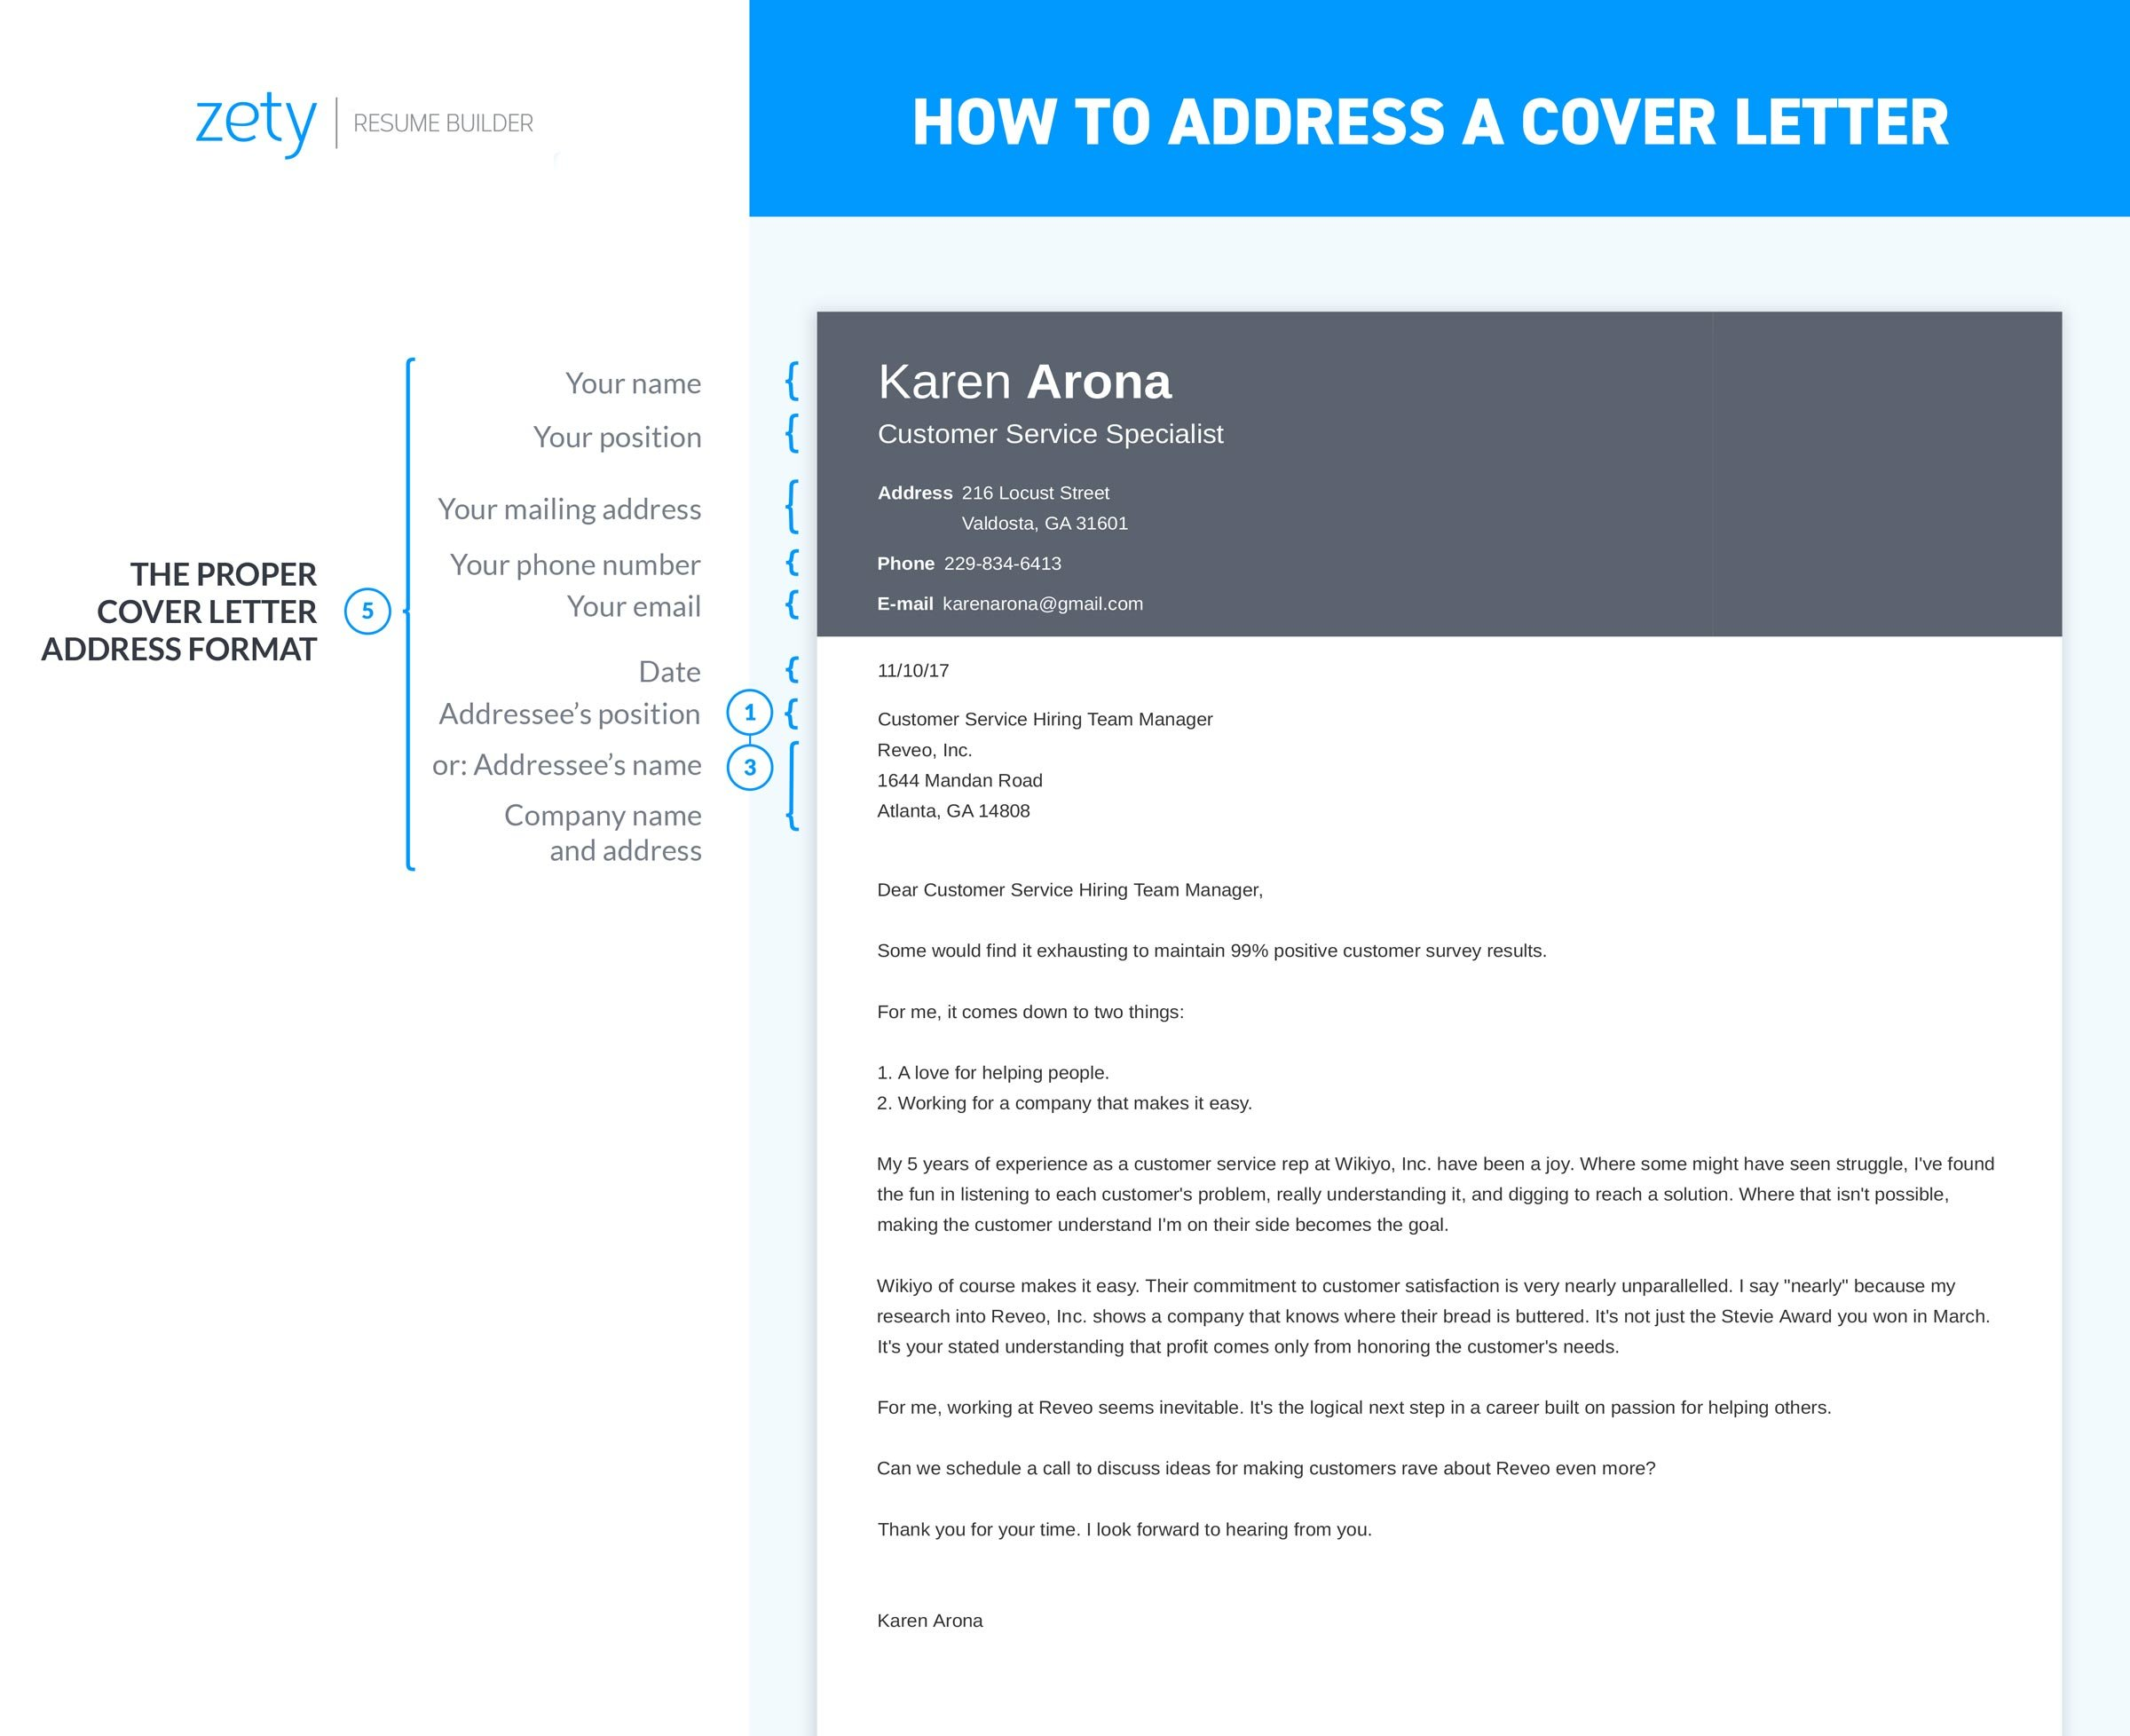 address a cover letter